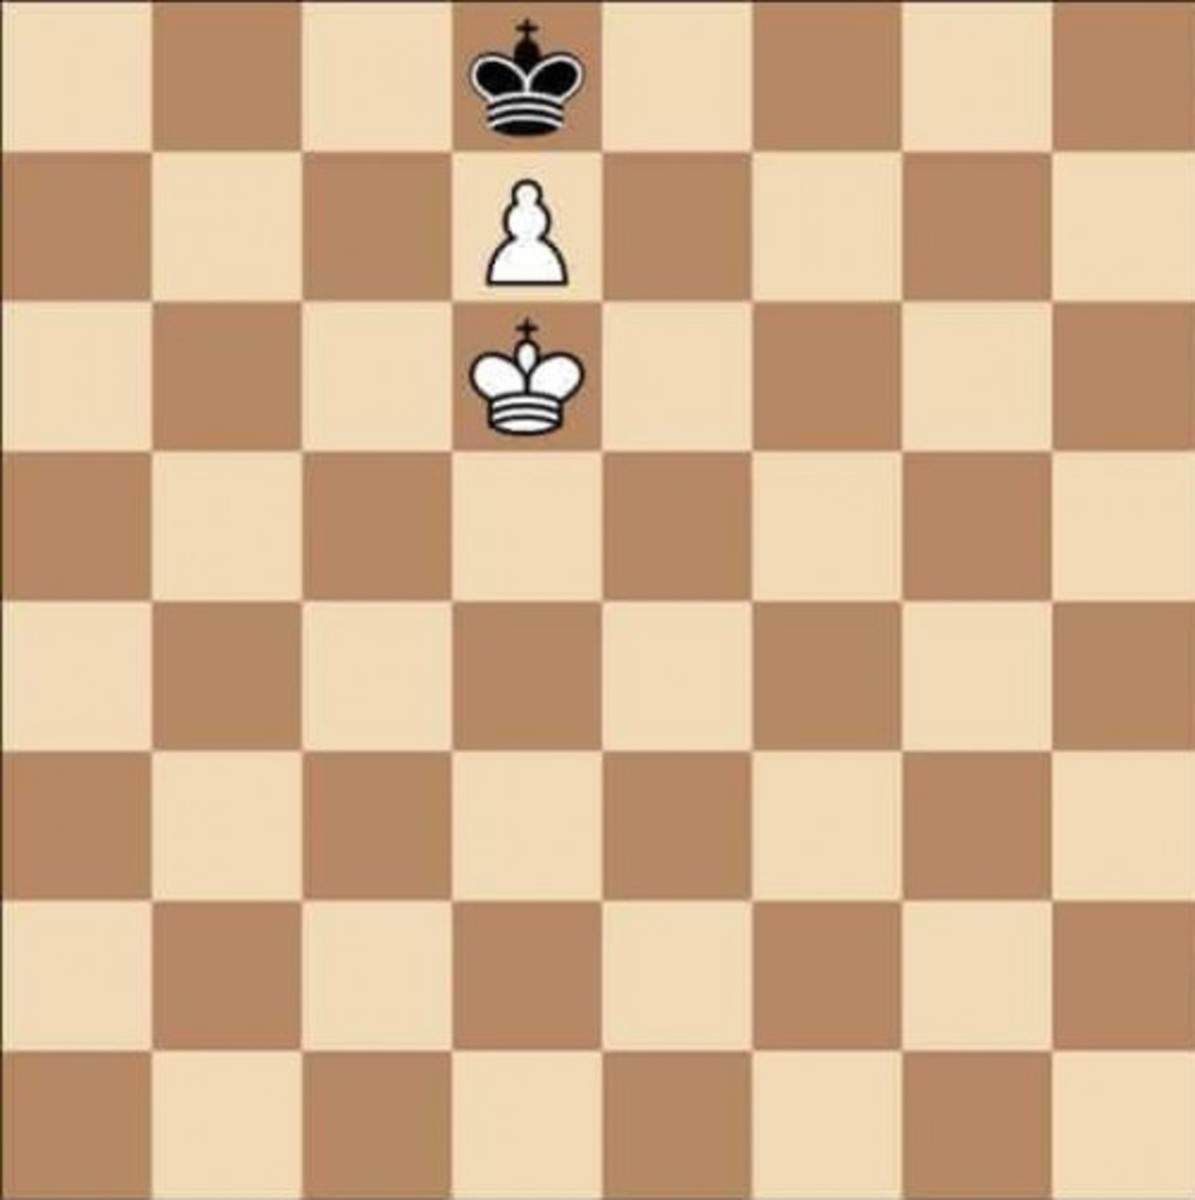 Chess stalemate (black King can't move)